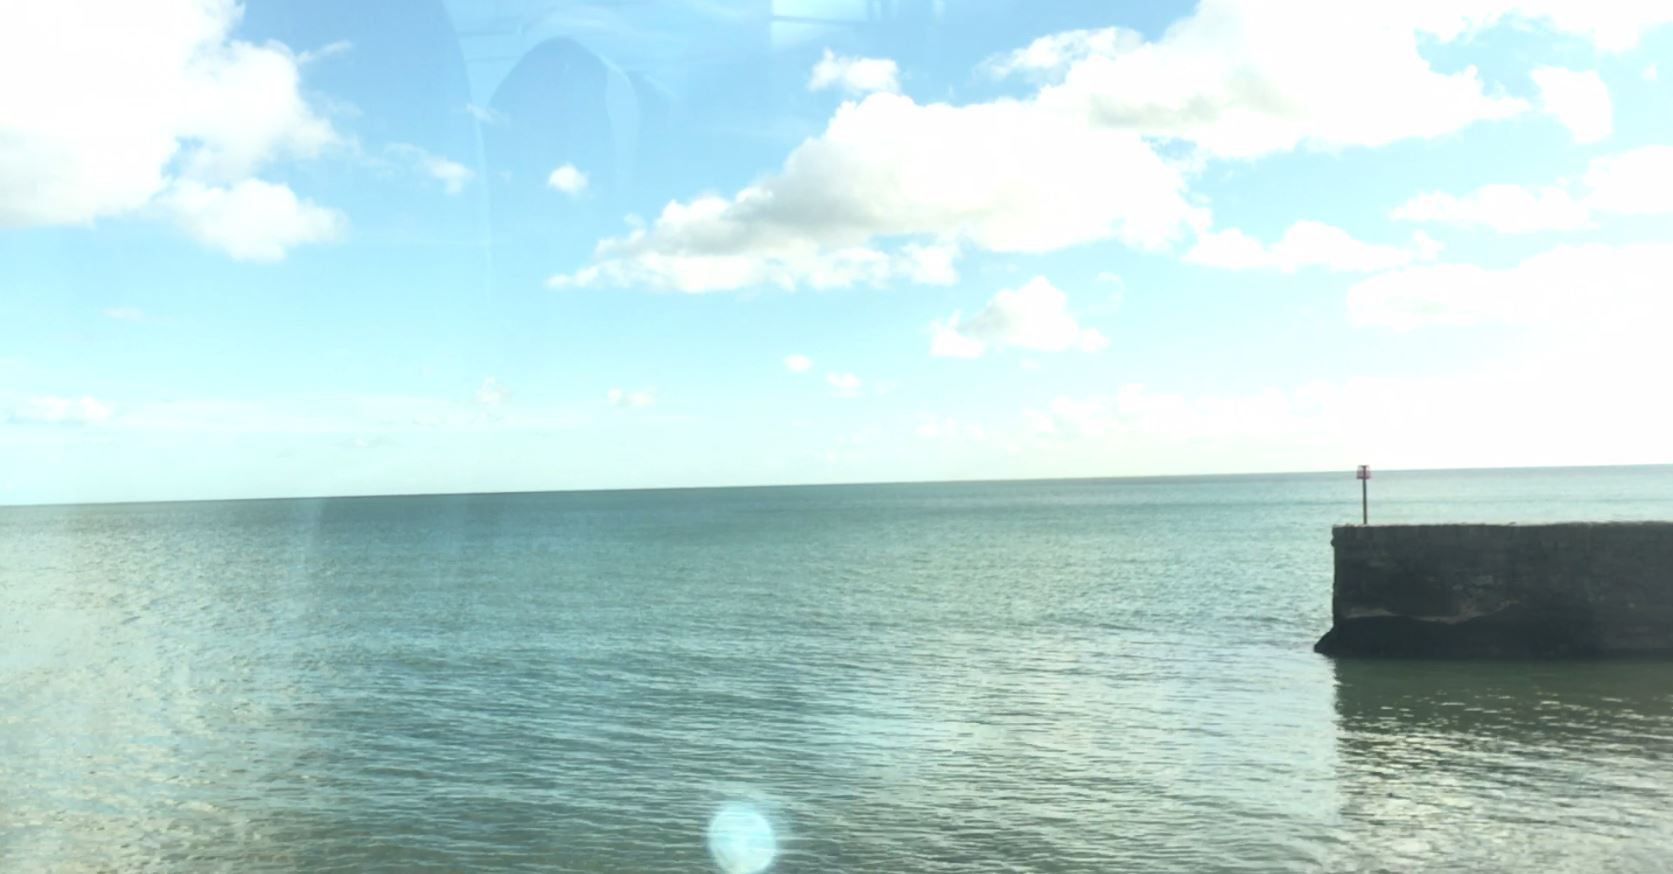 View from train at Dawlish